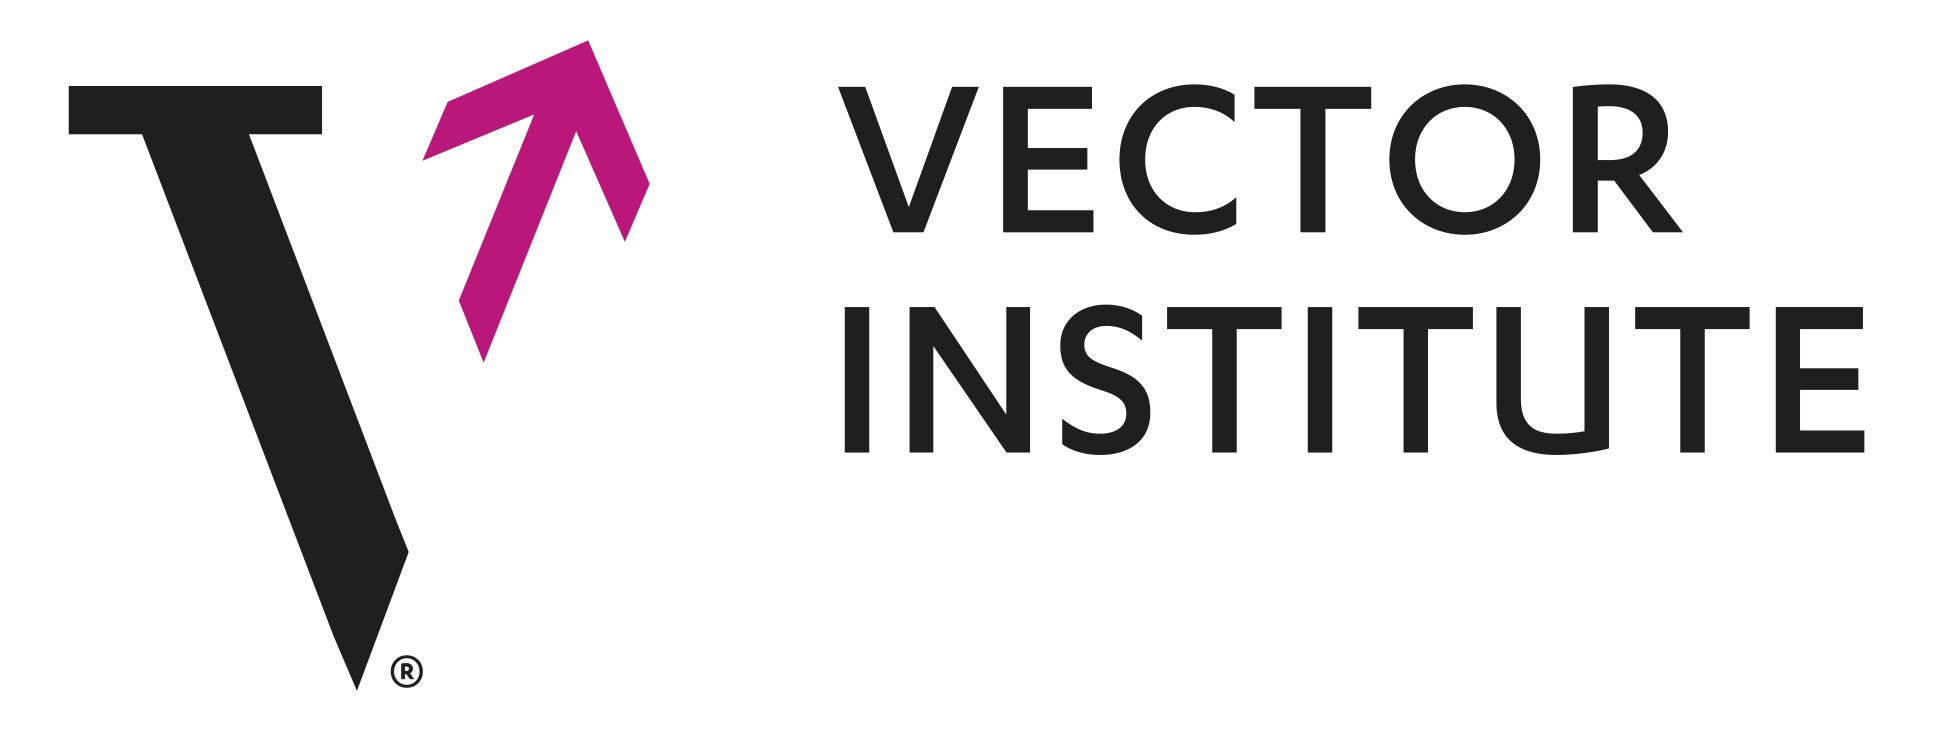 Vector Institute.png